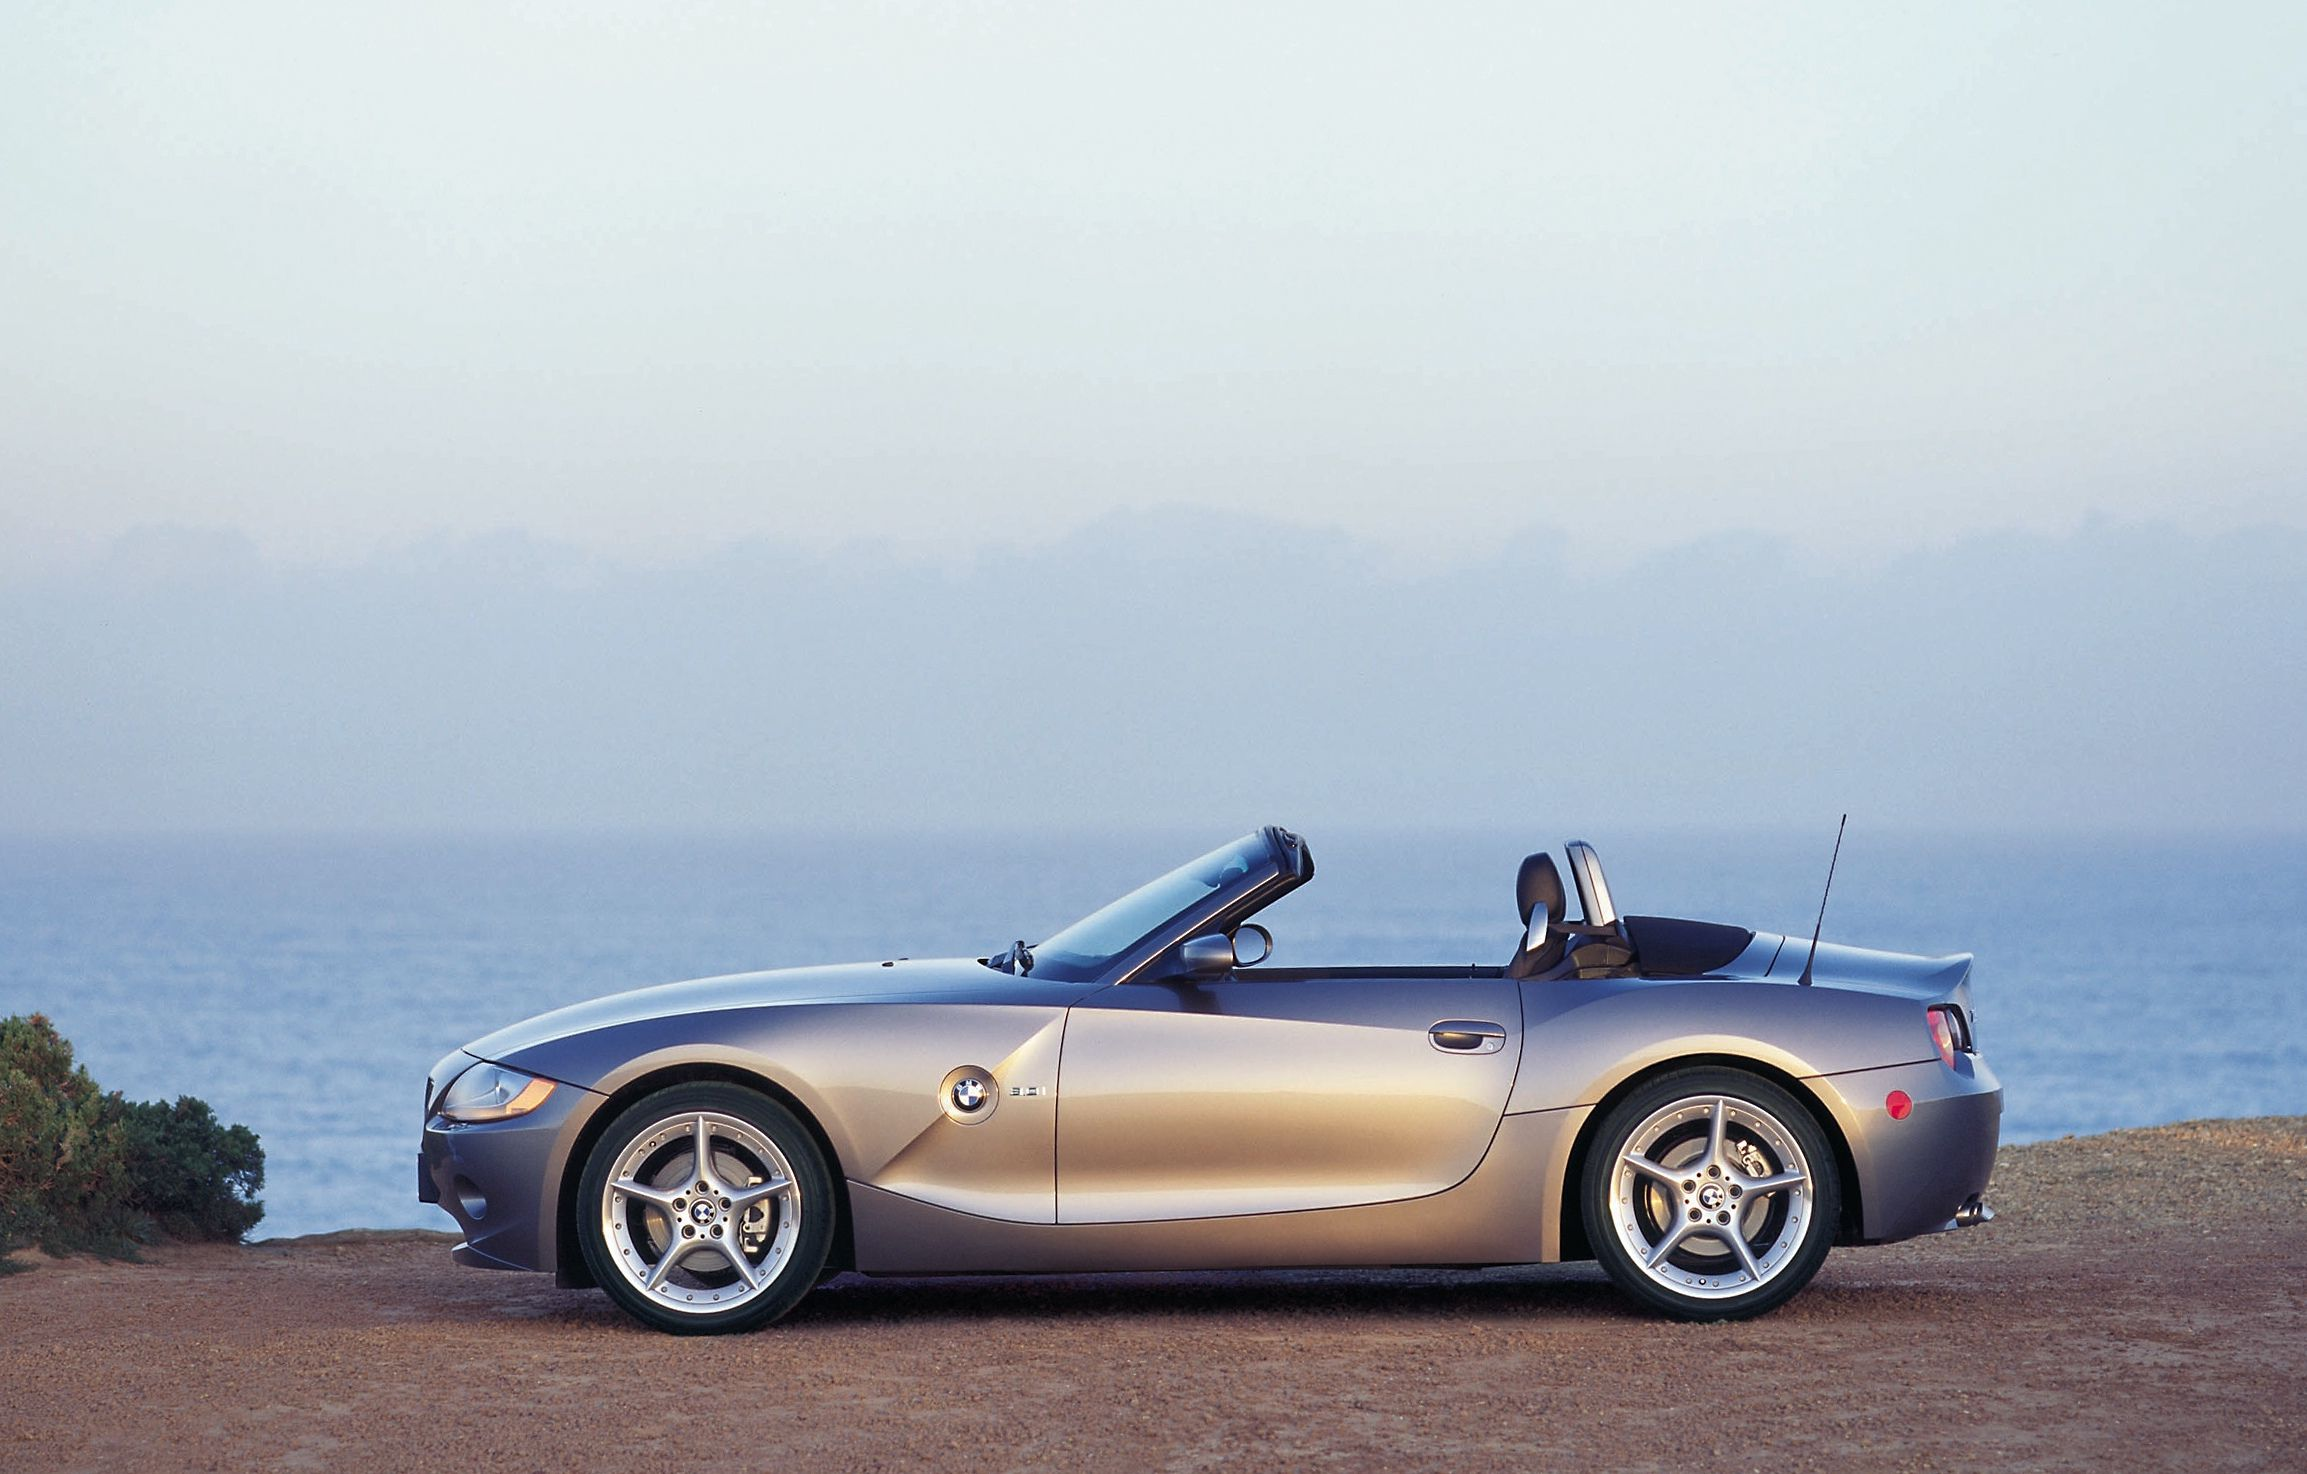 BMW Z4 convertible parked